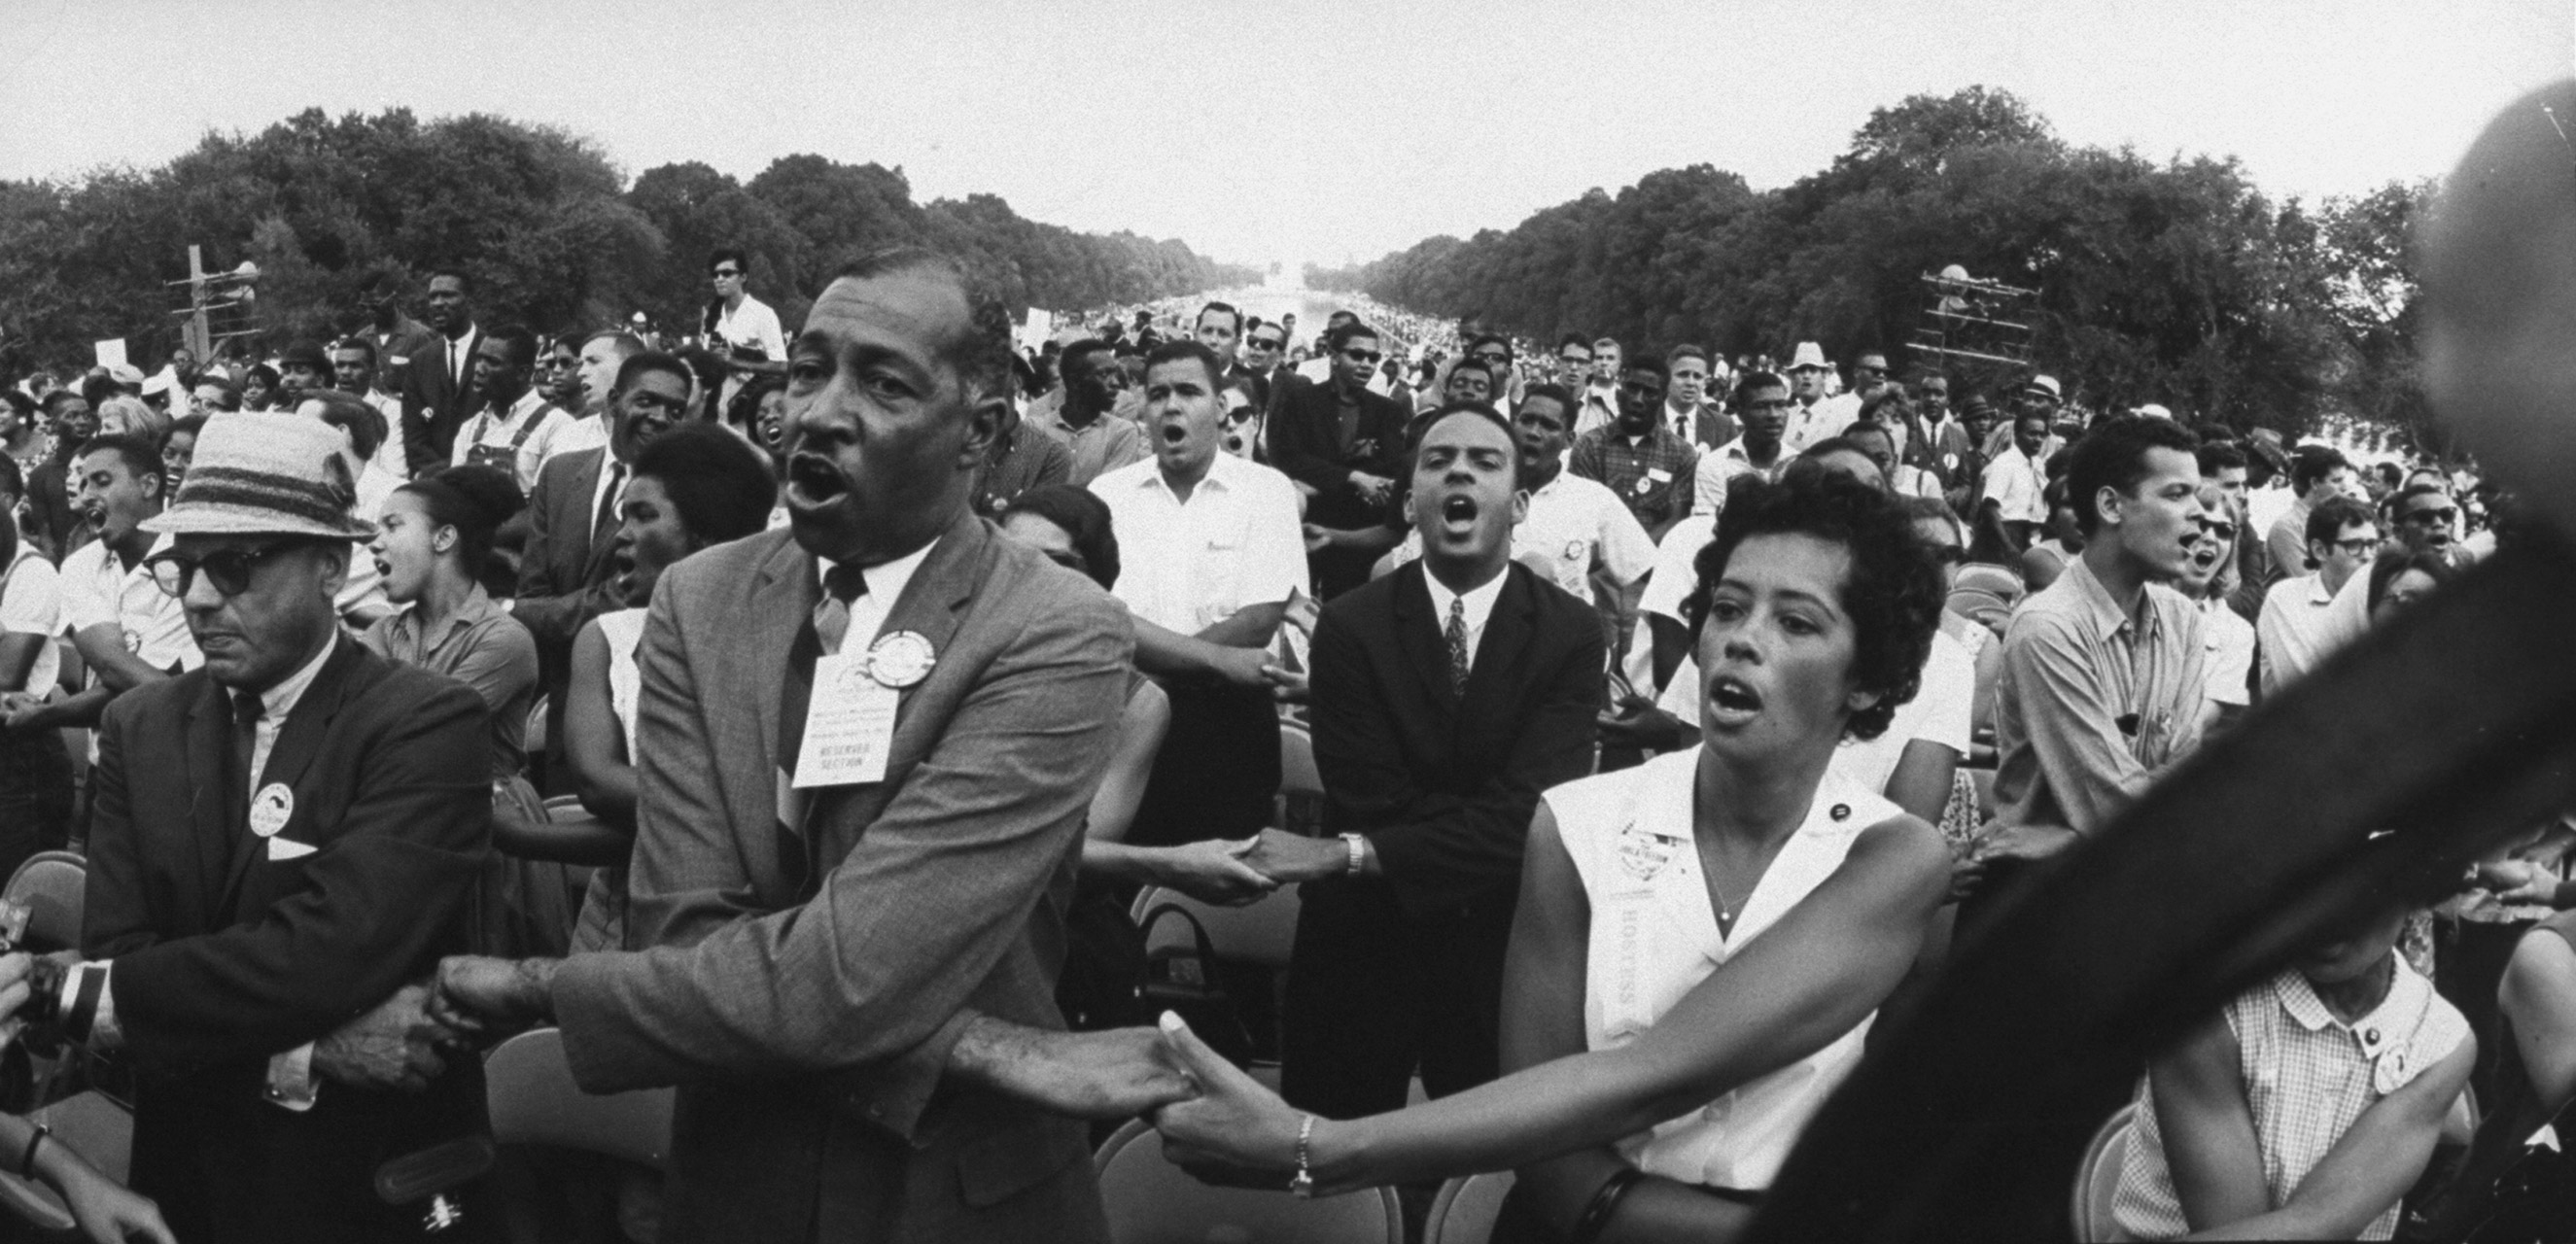 Civil rights activists Julian Bond (right) and Andrew J. Young (center), hold hands during the March on Washington in front of the Washington Monument in August 1963.